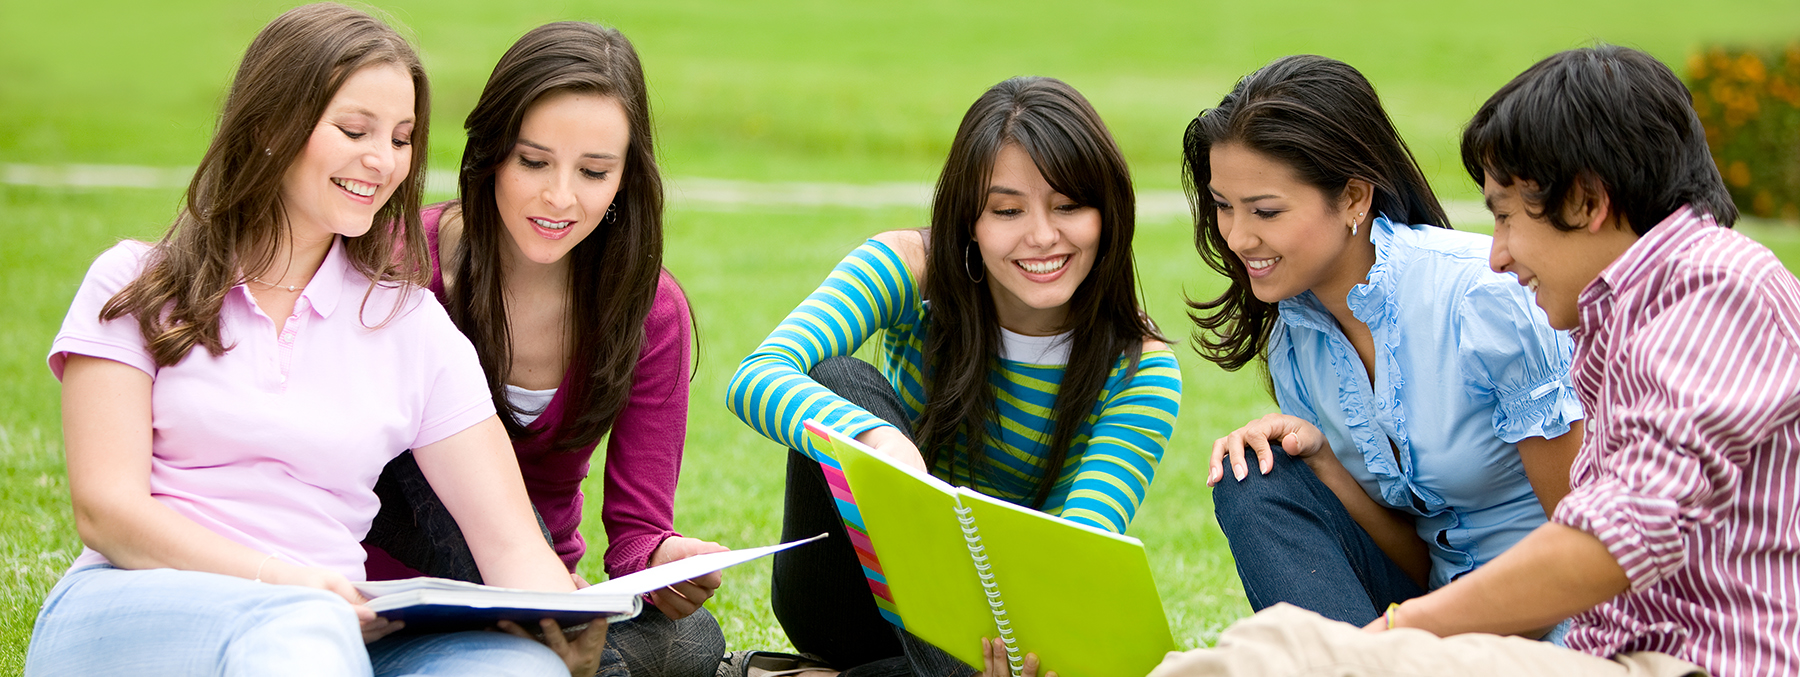 Students Studying Diploma Course